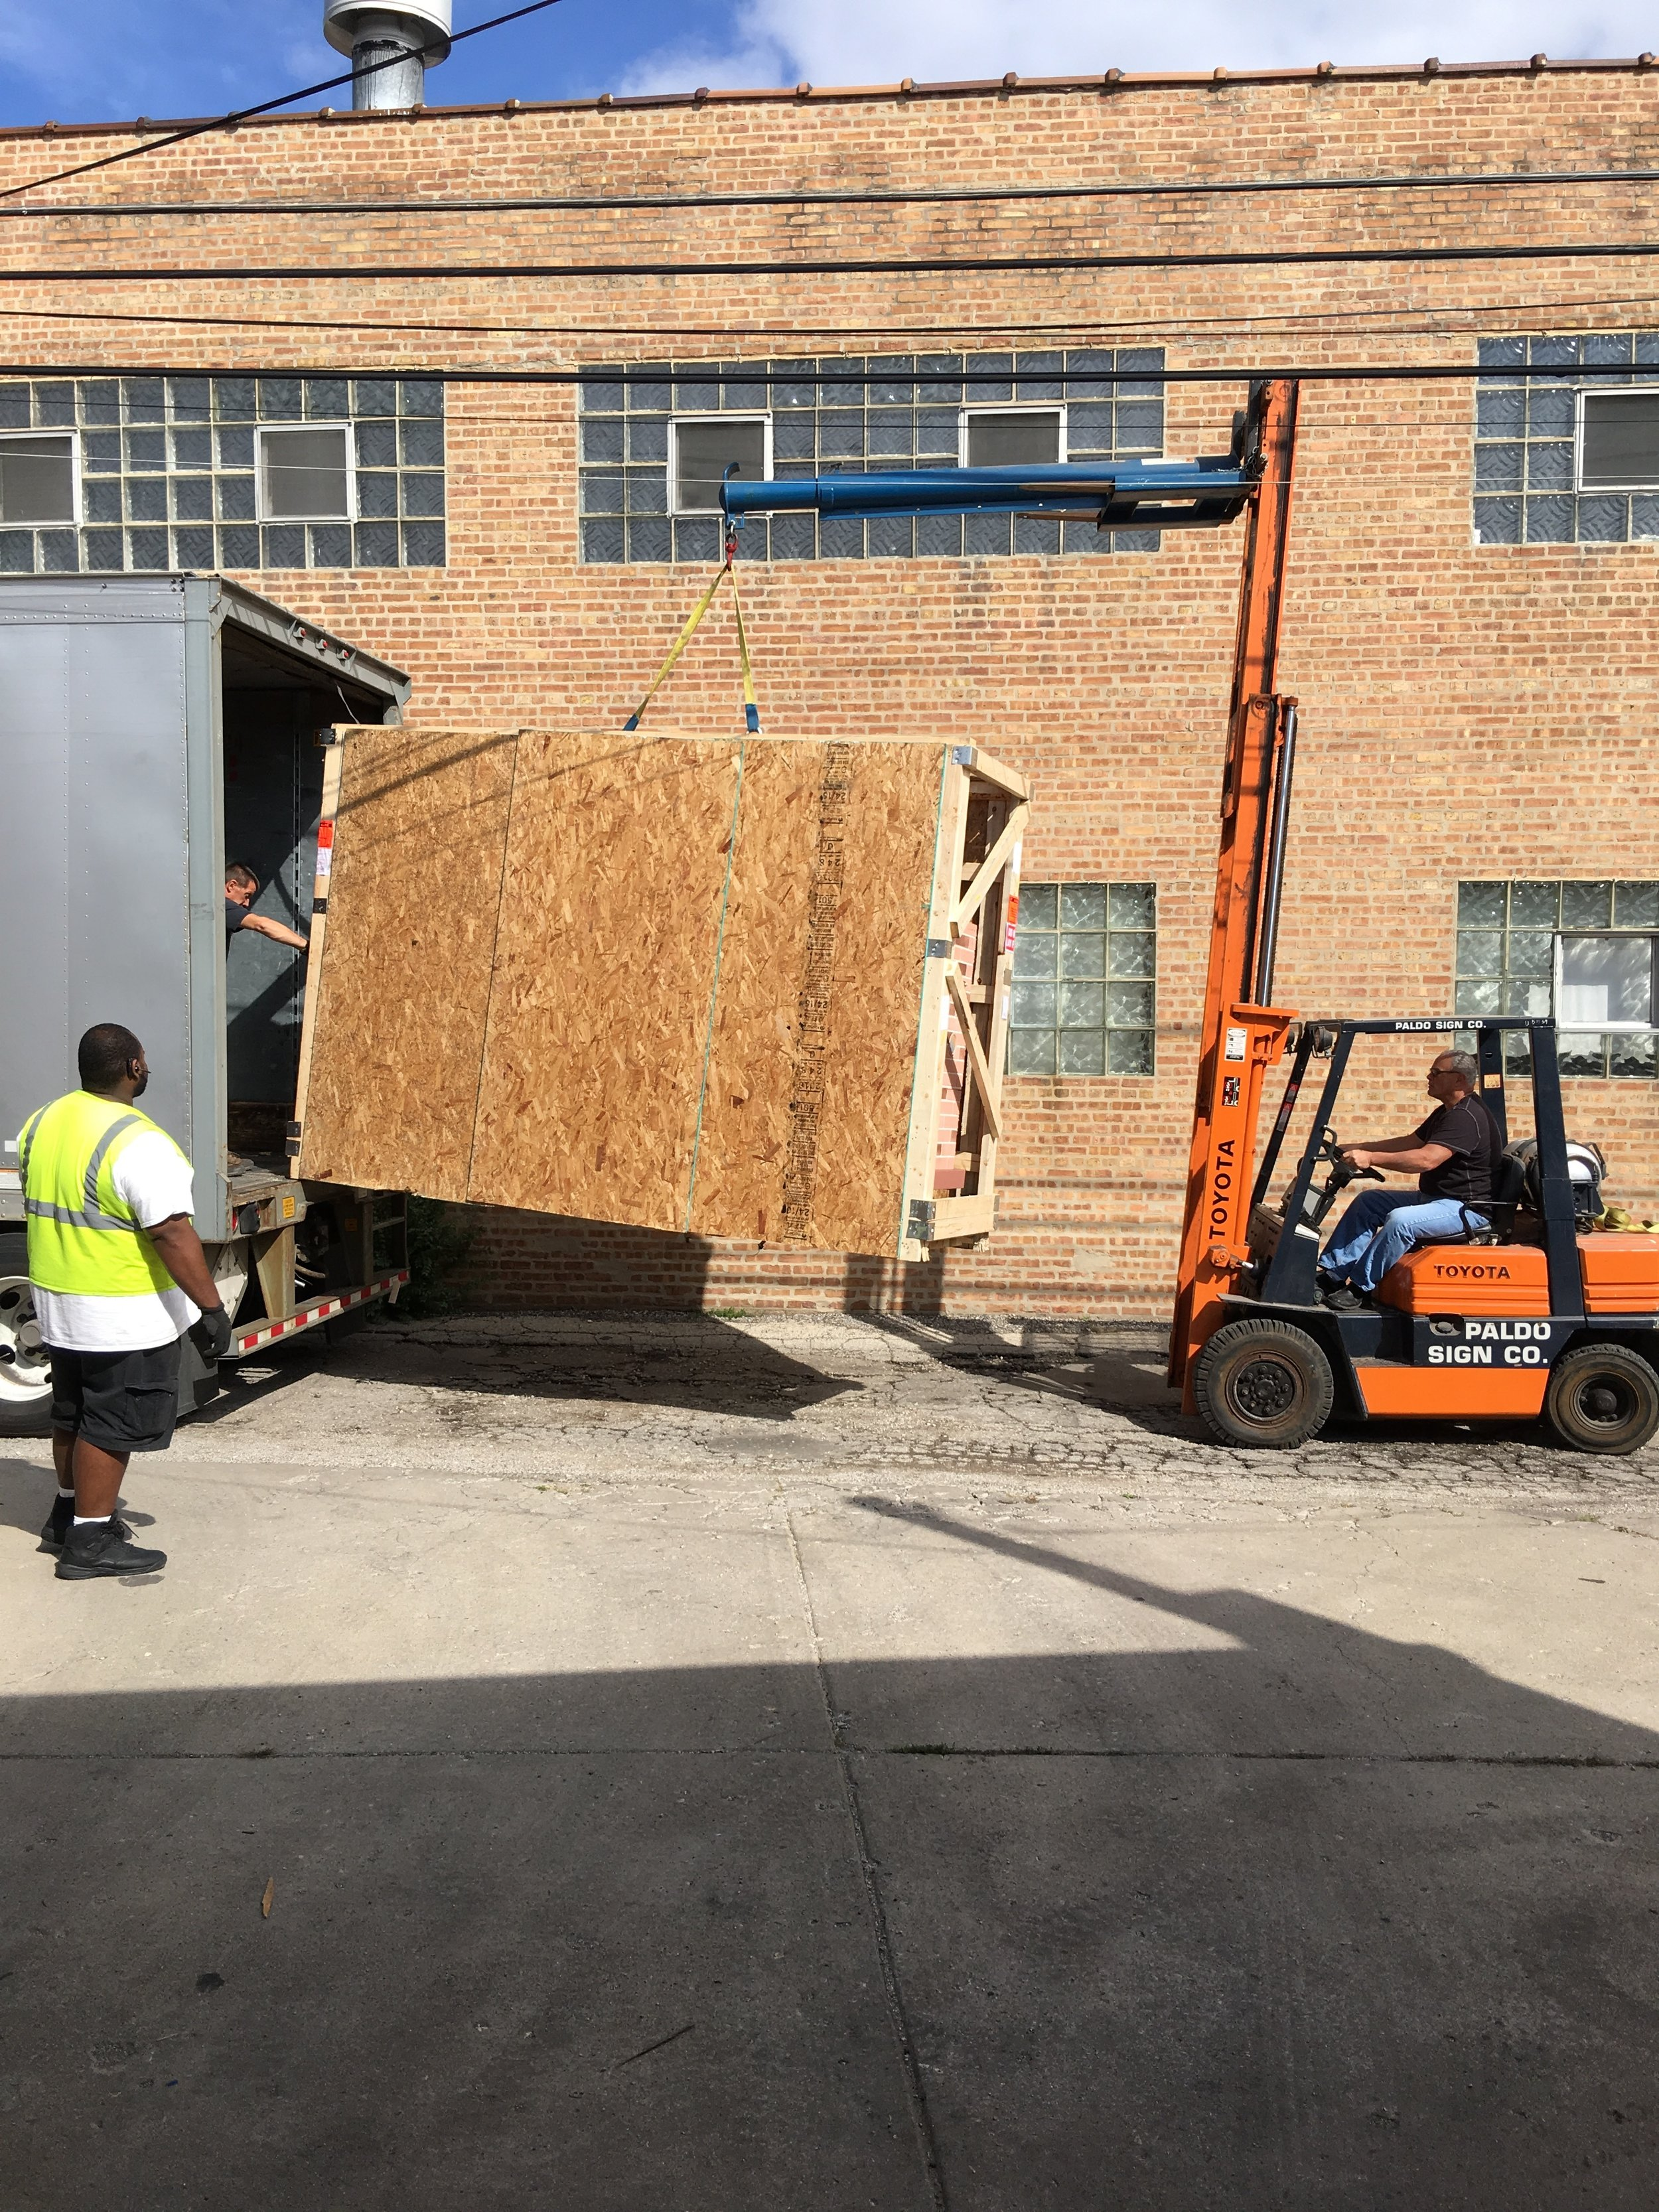 Unloading a sign